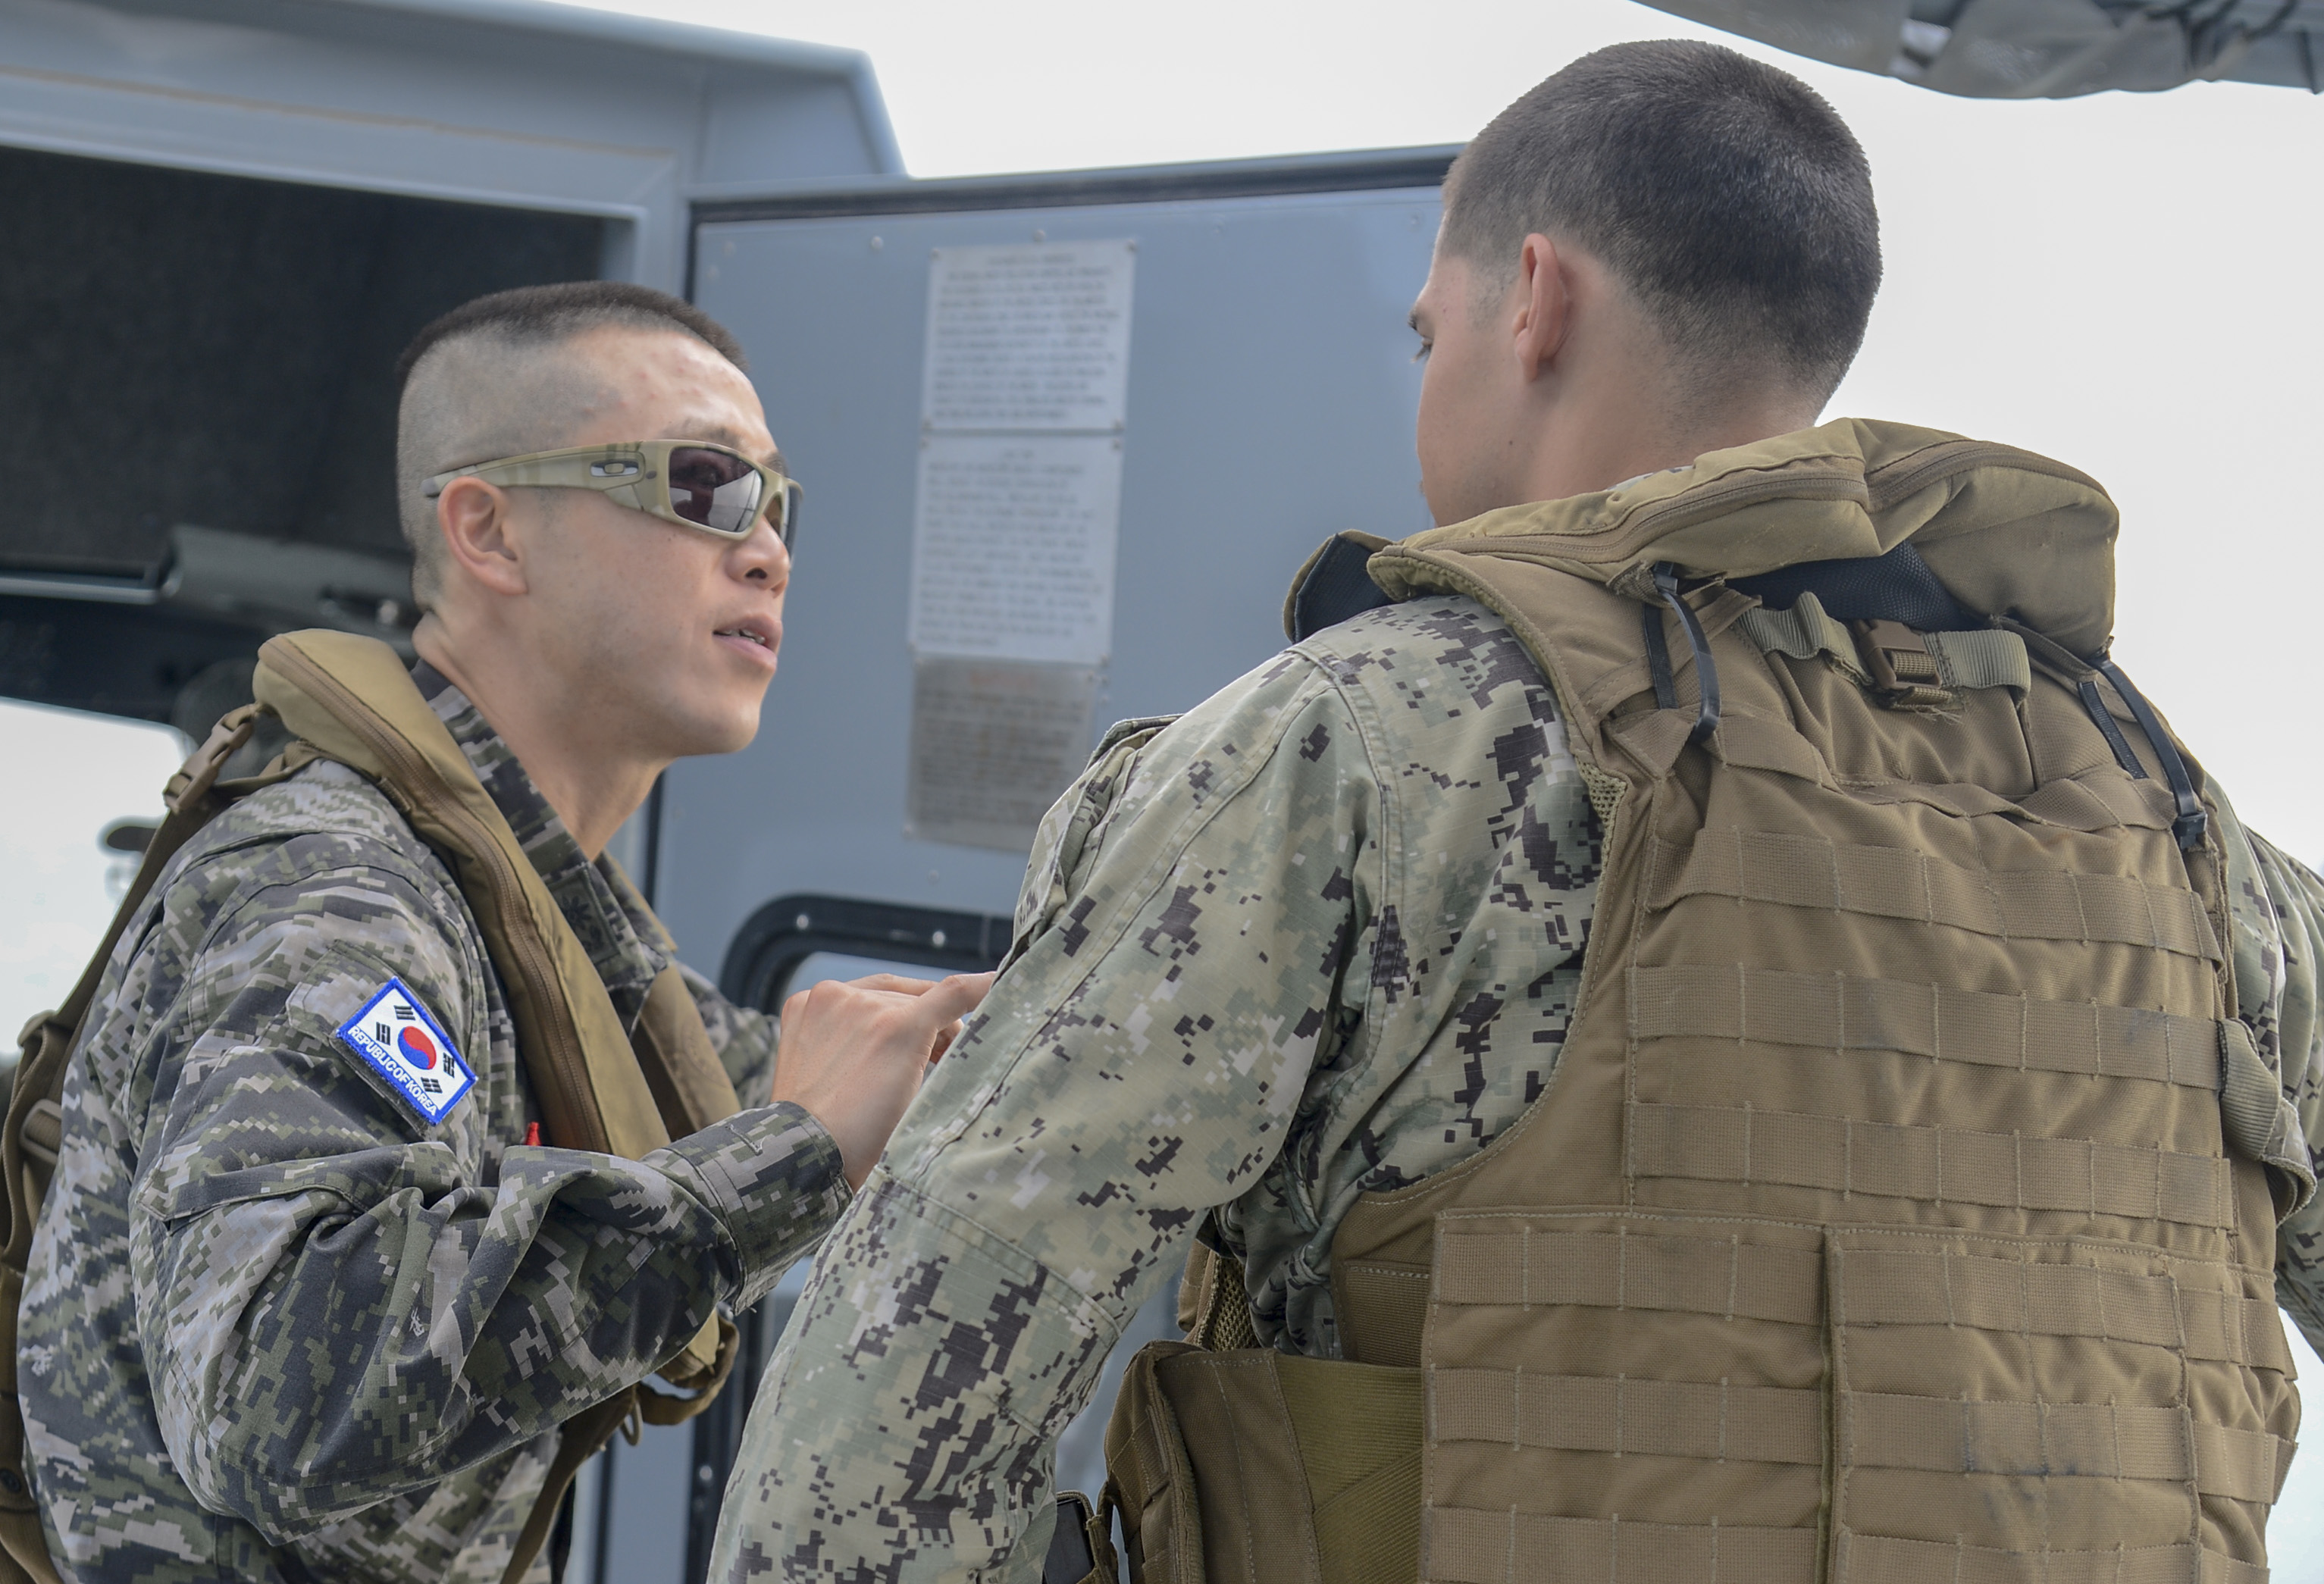 Republic of Korea marine Maj. Hyunchang Choi, a foreign liaison officer assigned to Combined Joint Task Force-Horn of Africa (CJTF-HOA), speaks to Master at Arms 3rd Class Daniel Ortiz, assigned to Coastal Riverine Squadron (CRS) 8, during maritime security operations (MSO) in the Gulf of Tadjourah, Oct. 23, 2018. CJTF-HOA FLOs observed the operations to better understand MSO and the CRS-8 mission. (U.S. Navy photo by Mass Communication Specialist 2nd Class Timothy M. Ahearn)